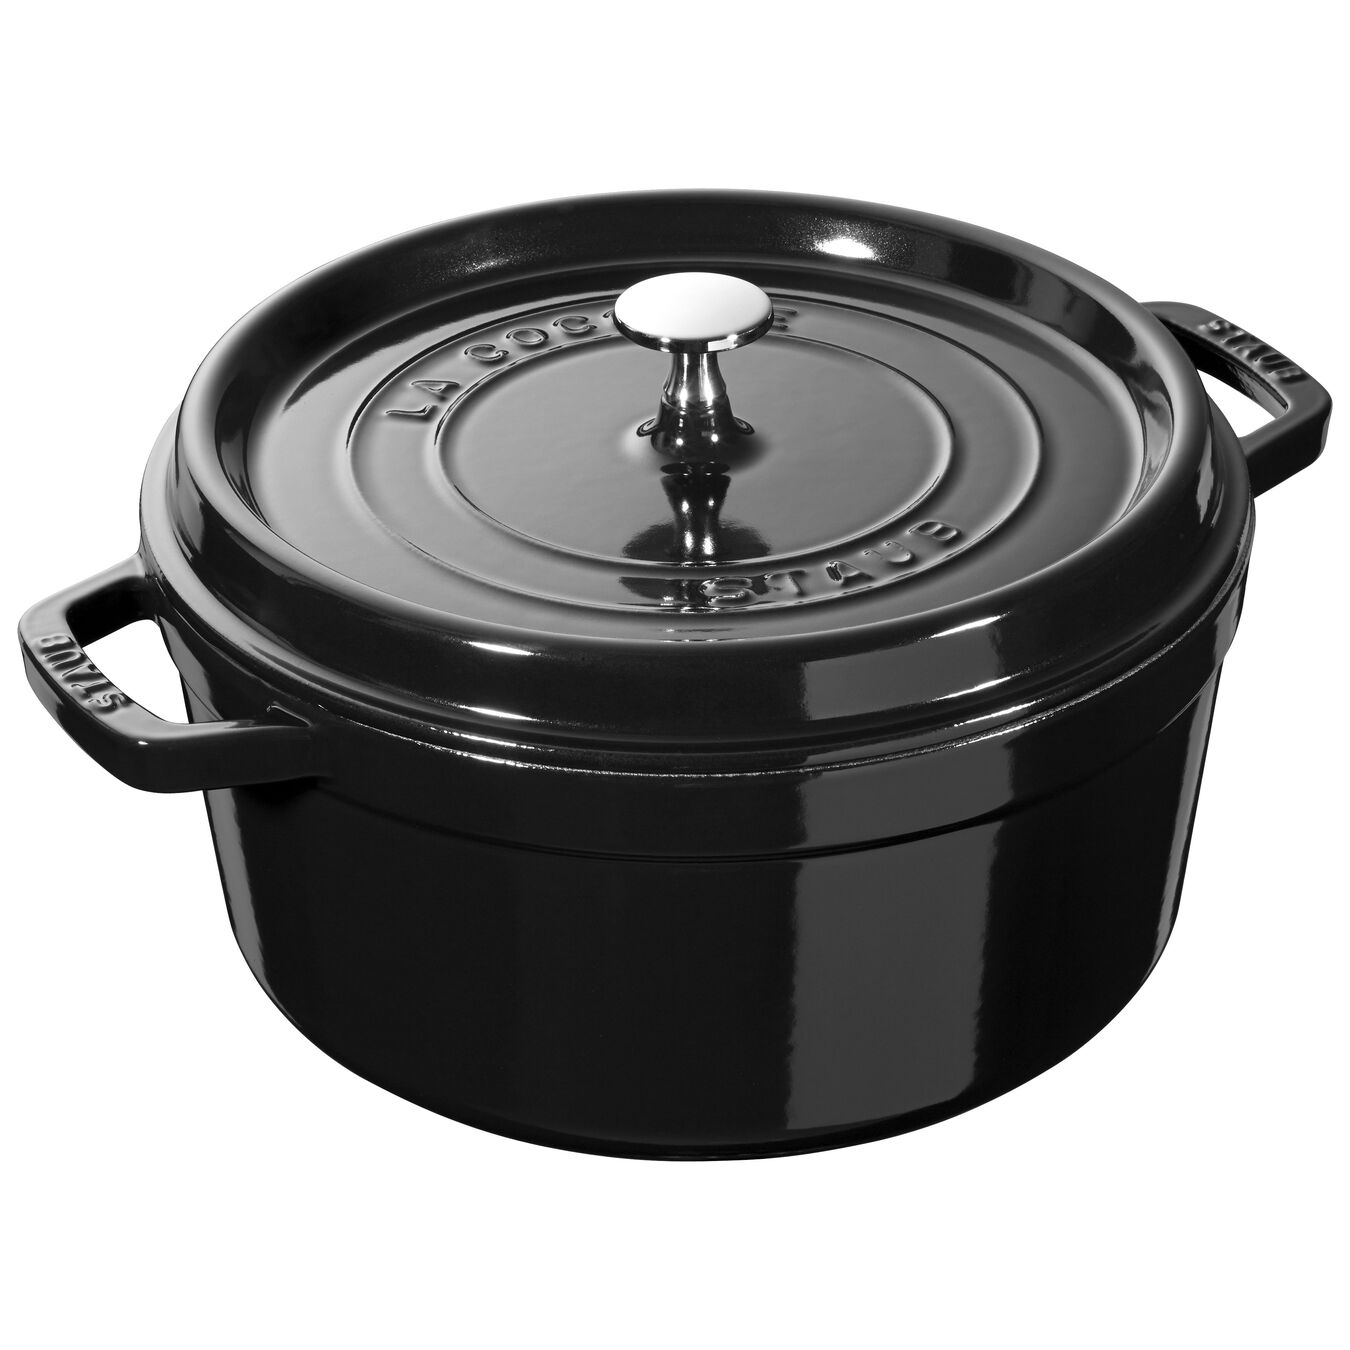 5.25 l Cast iron round Cocotte, shiny-black - Visual Imperfections,,large 1